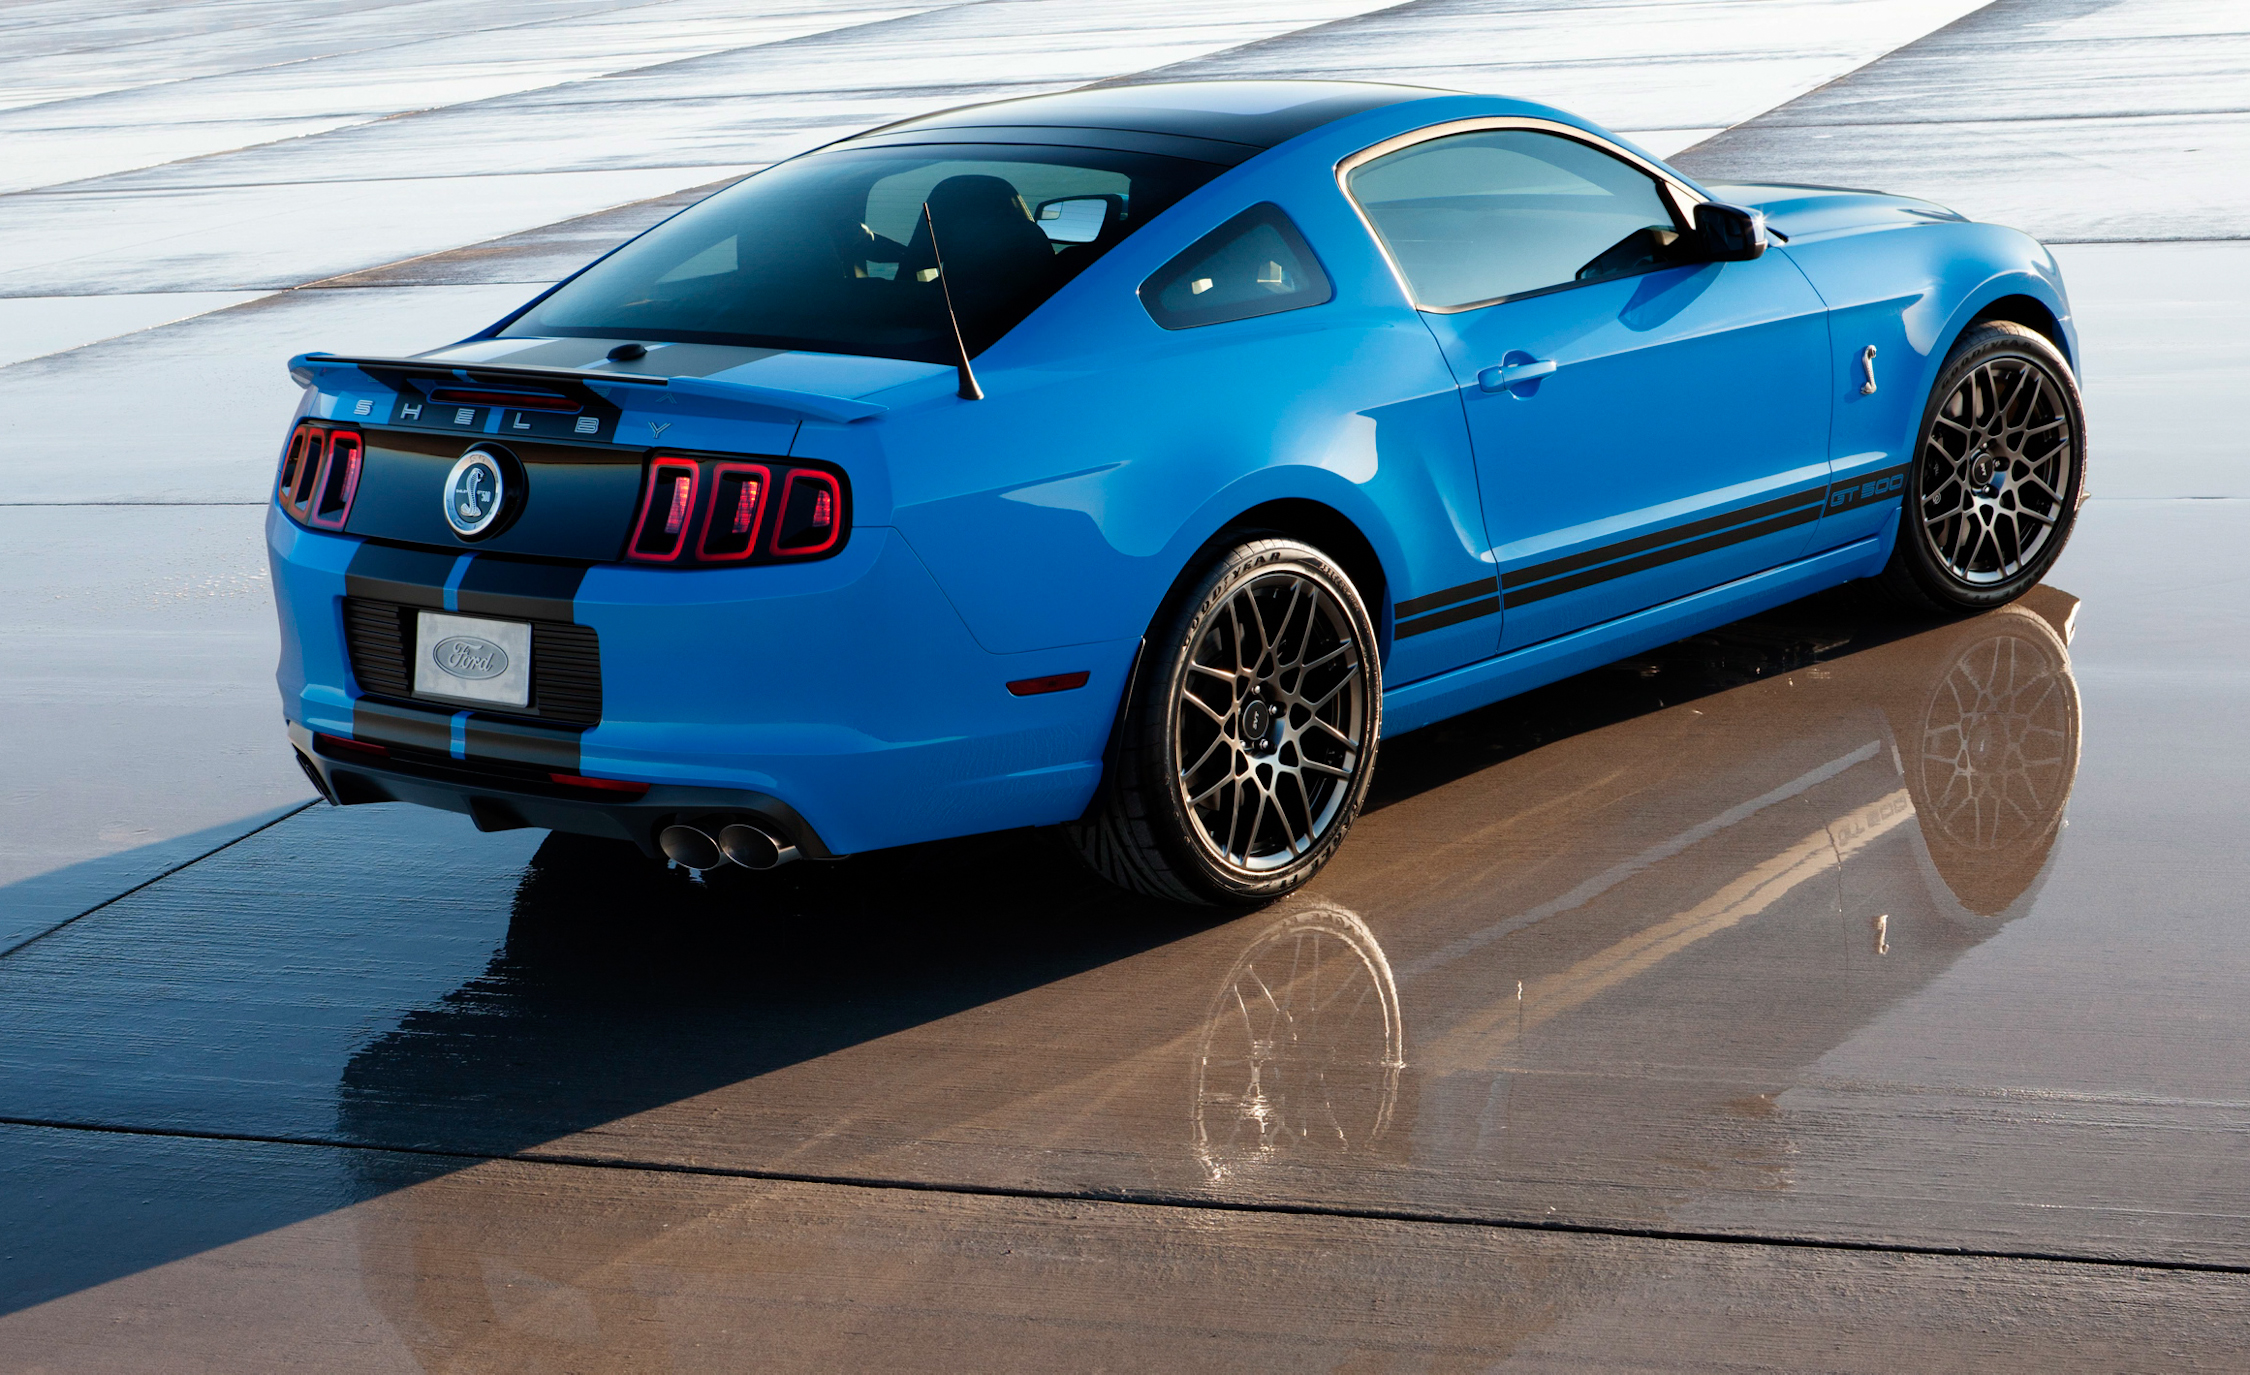 2013 Ford Mustang Shelby GT500 Blue Exterior Rear And Side (Photo 3 of 47)